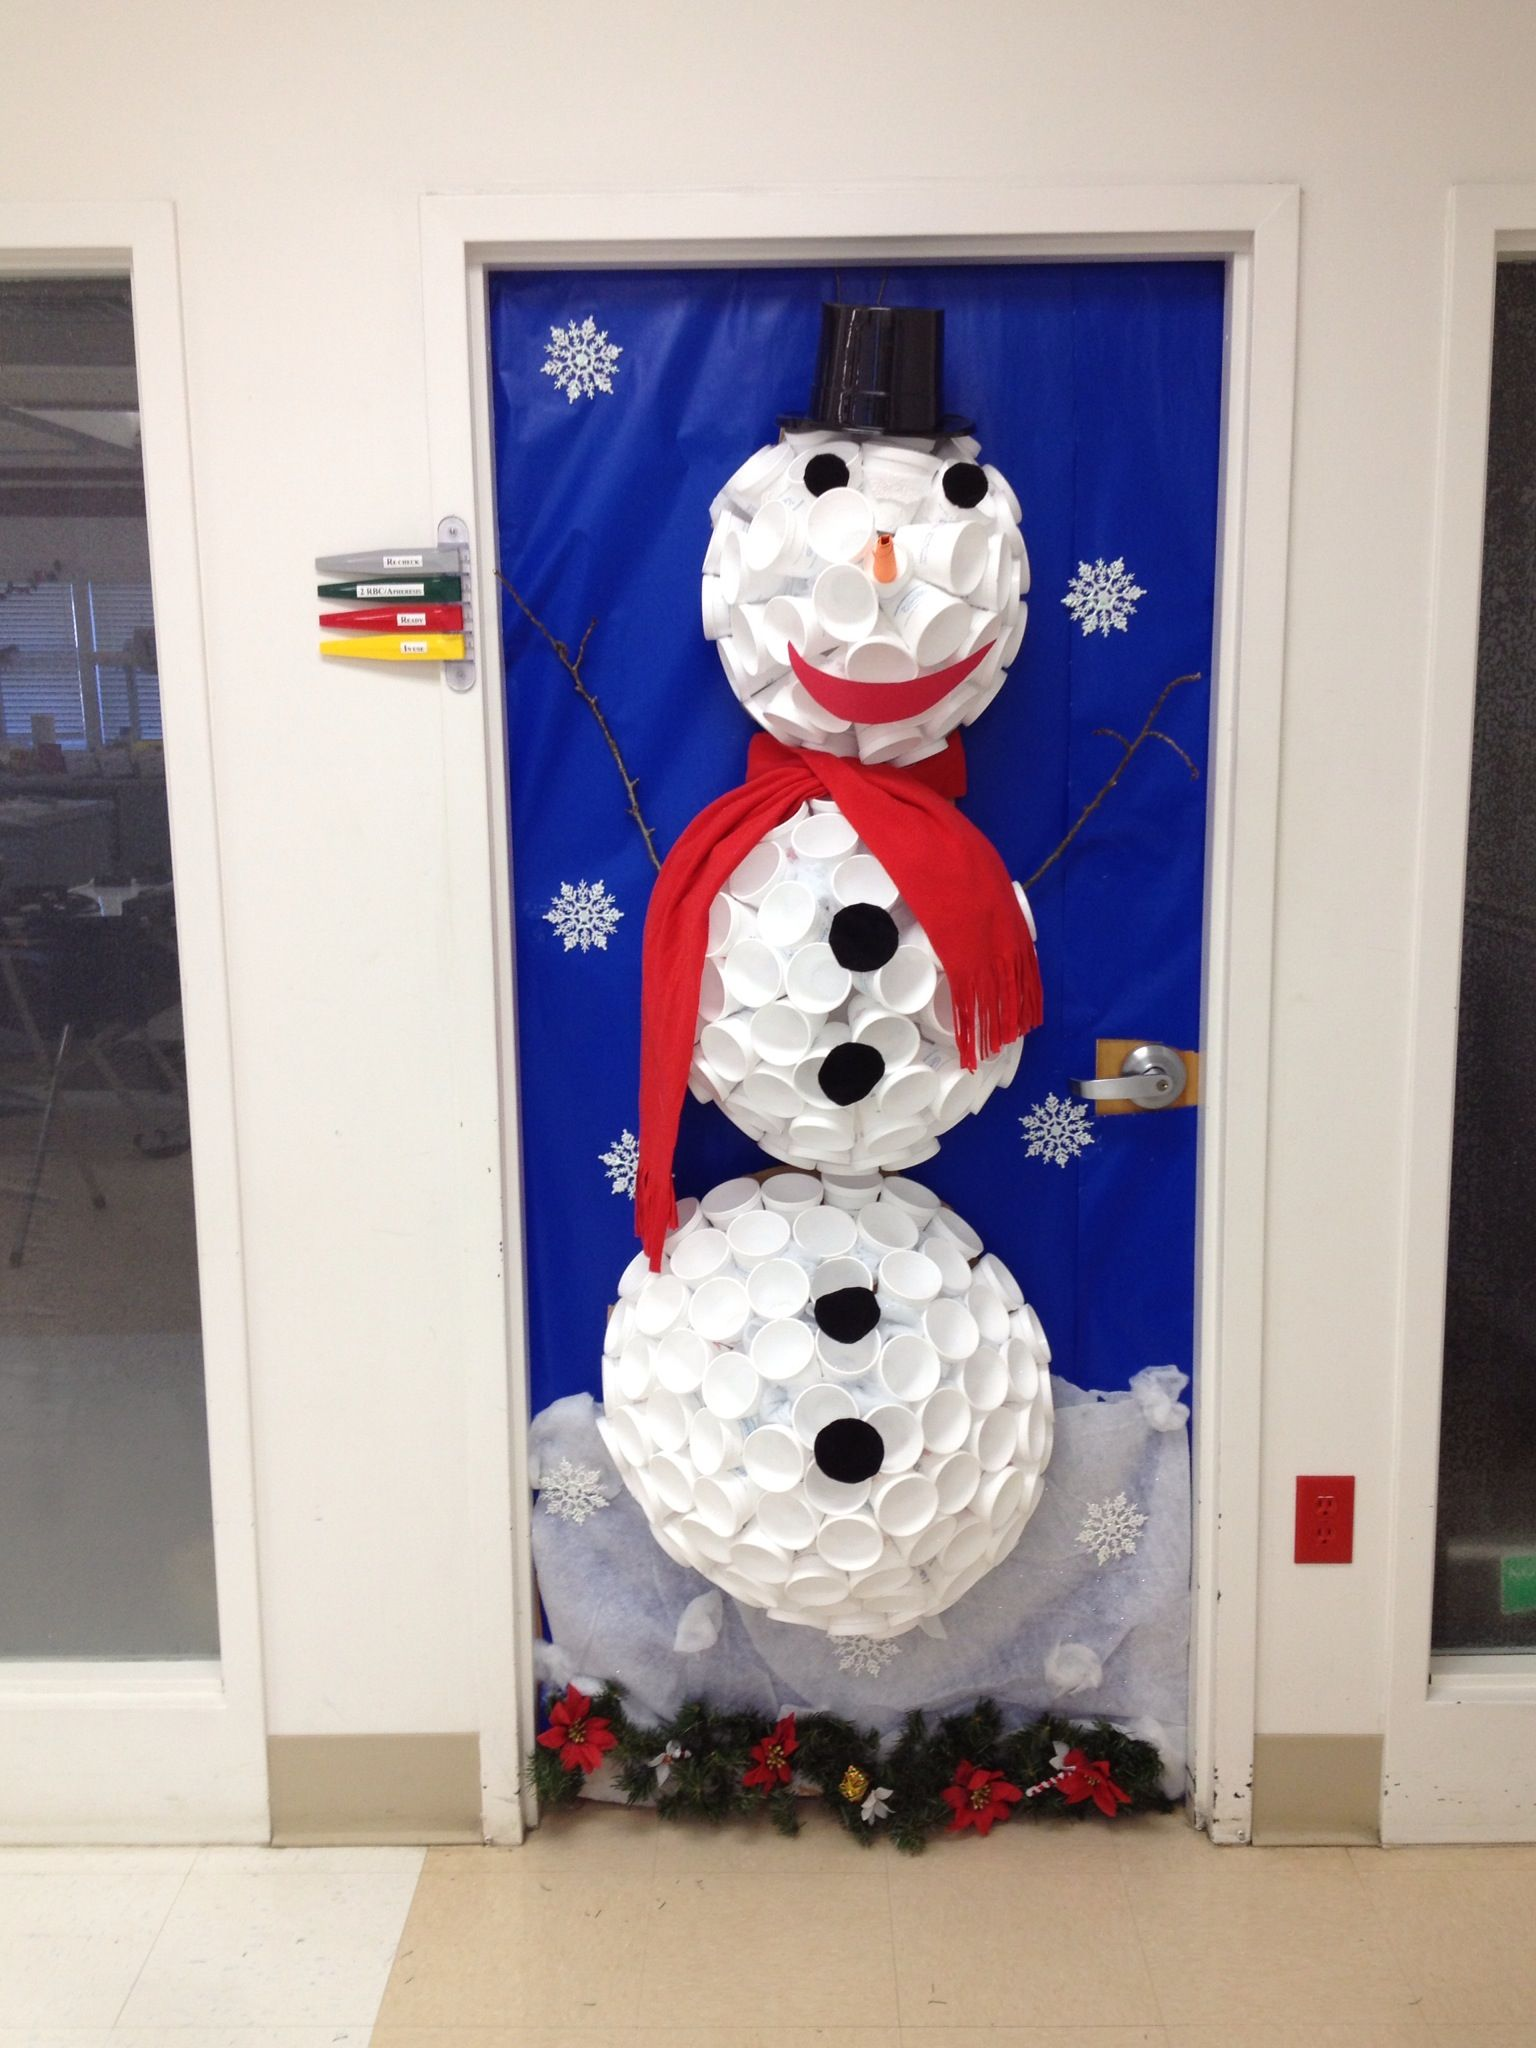 Our office door decorating contest entry. Frosty's Winter